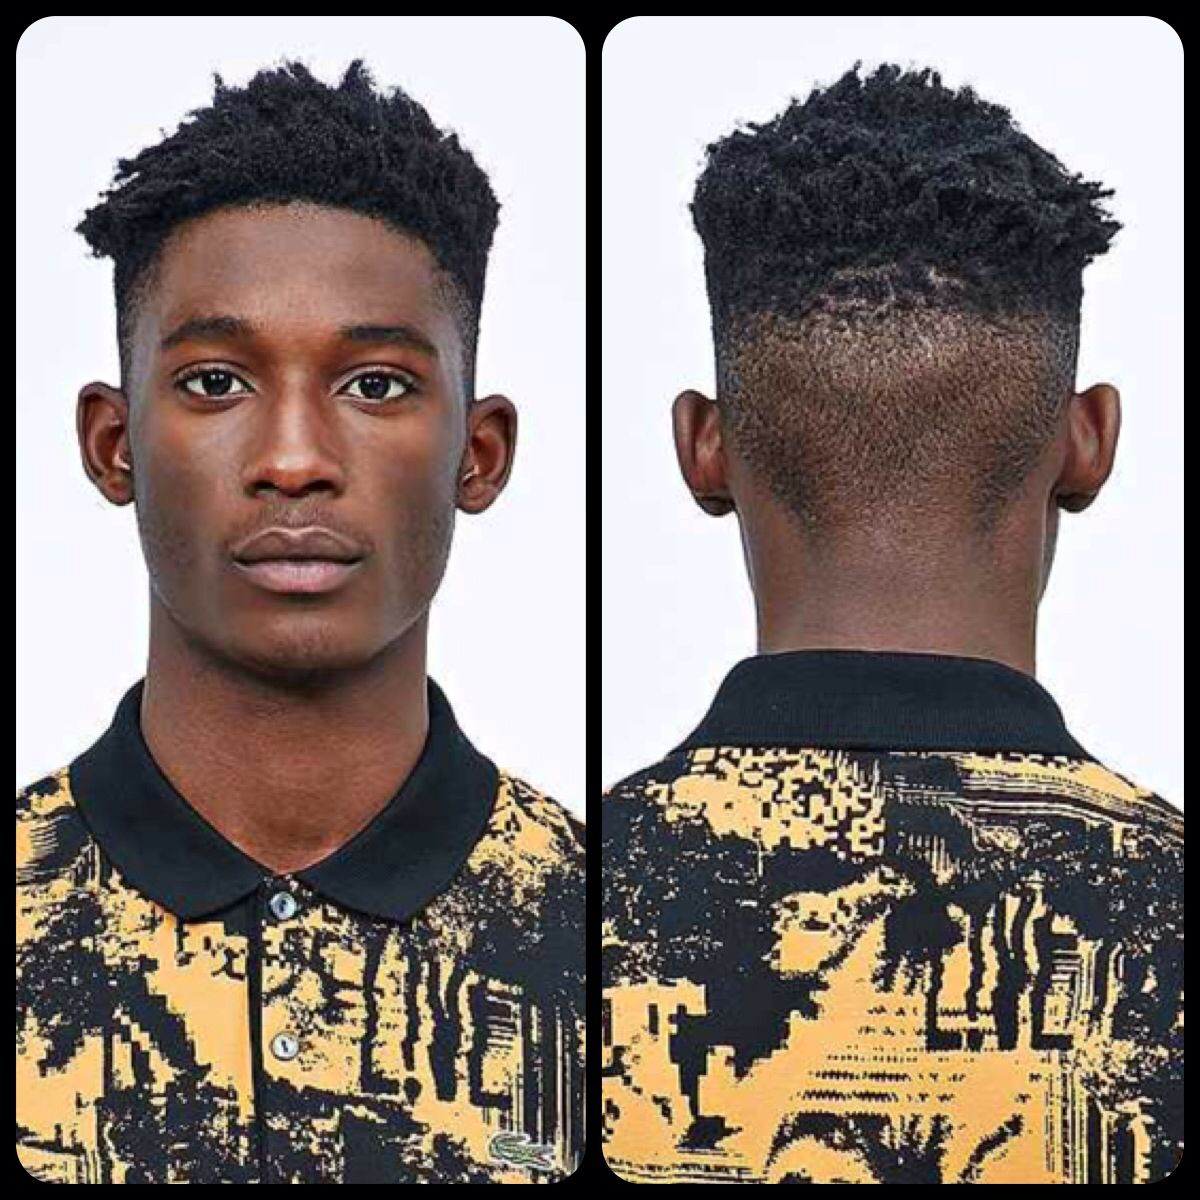 Pin On Men S Textured Hairstyles